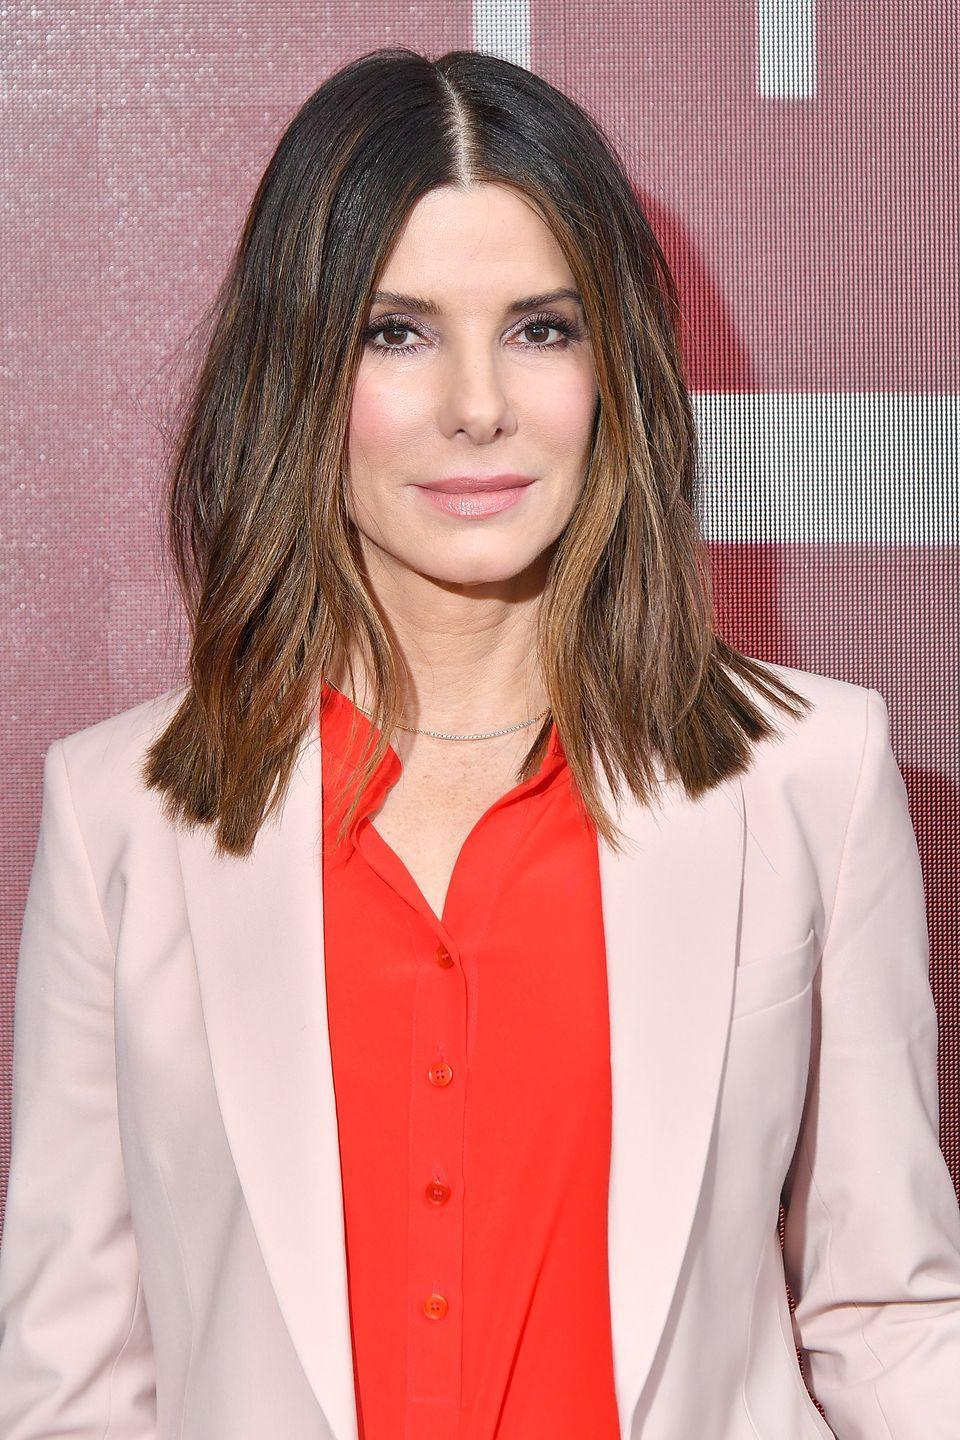 """<p>Sandra Bullock mimicked her character Leigh Anne Tuohy from the movie <em>The Blind Side</em> by <a href=""""http://usatoday30.usatoday.com/life/people/2010-04-29-bullock29_CV_N.htm"""" rel=""""nofollow noopener"""" target=""""_blank"""" data-ylk=""""slk:adopting a son"""" class=""""link rapid-noclick-resp"""">adopting a son</a>, Louis, in January 2010. Five years later, she revealed that she'd <a href=""""http://www.eonline.com/de/news/720501/sandra-bullock-reveals-how-she-kept-daughter-laila-s-adoption-secret-it-felt-very-much-like-witness-protection"""" rel=""""nofollow noopener"""" target=""""_blank"""" data-ylk=""""slk:also adopted a little girl named Laila"""" class=""""link rapid-noclick-resp"""">also adopted a little girl named Laila</a>.</p>"""